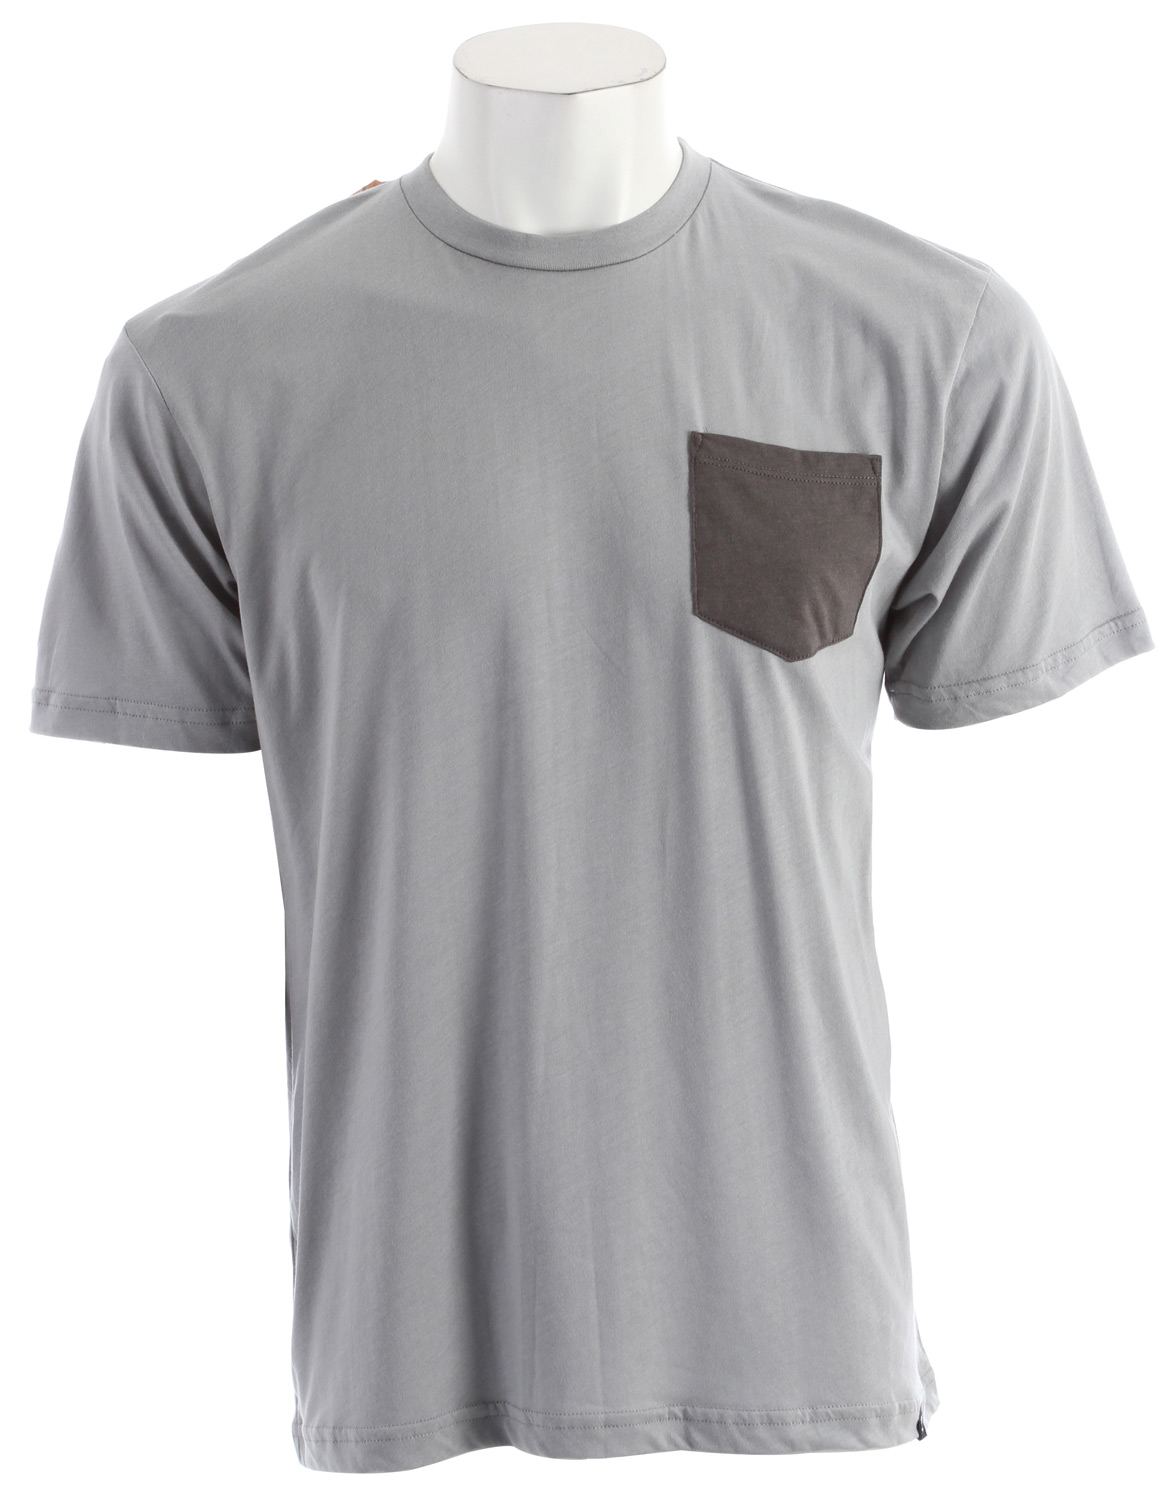 Arbor's premium comfort 70% viscose from bamboo / 30% organic cotton jersey t-shirt, custom made in Los Angeles, regular fit, front breast pocket, printed neck label. - $24.95